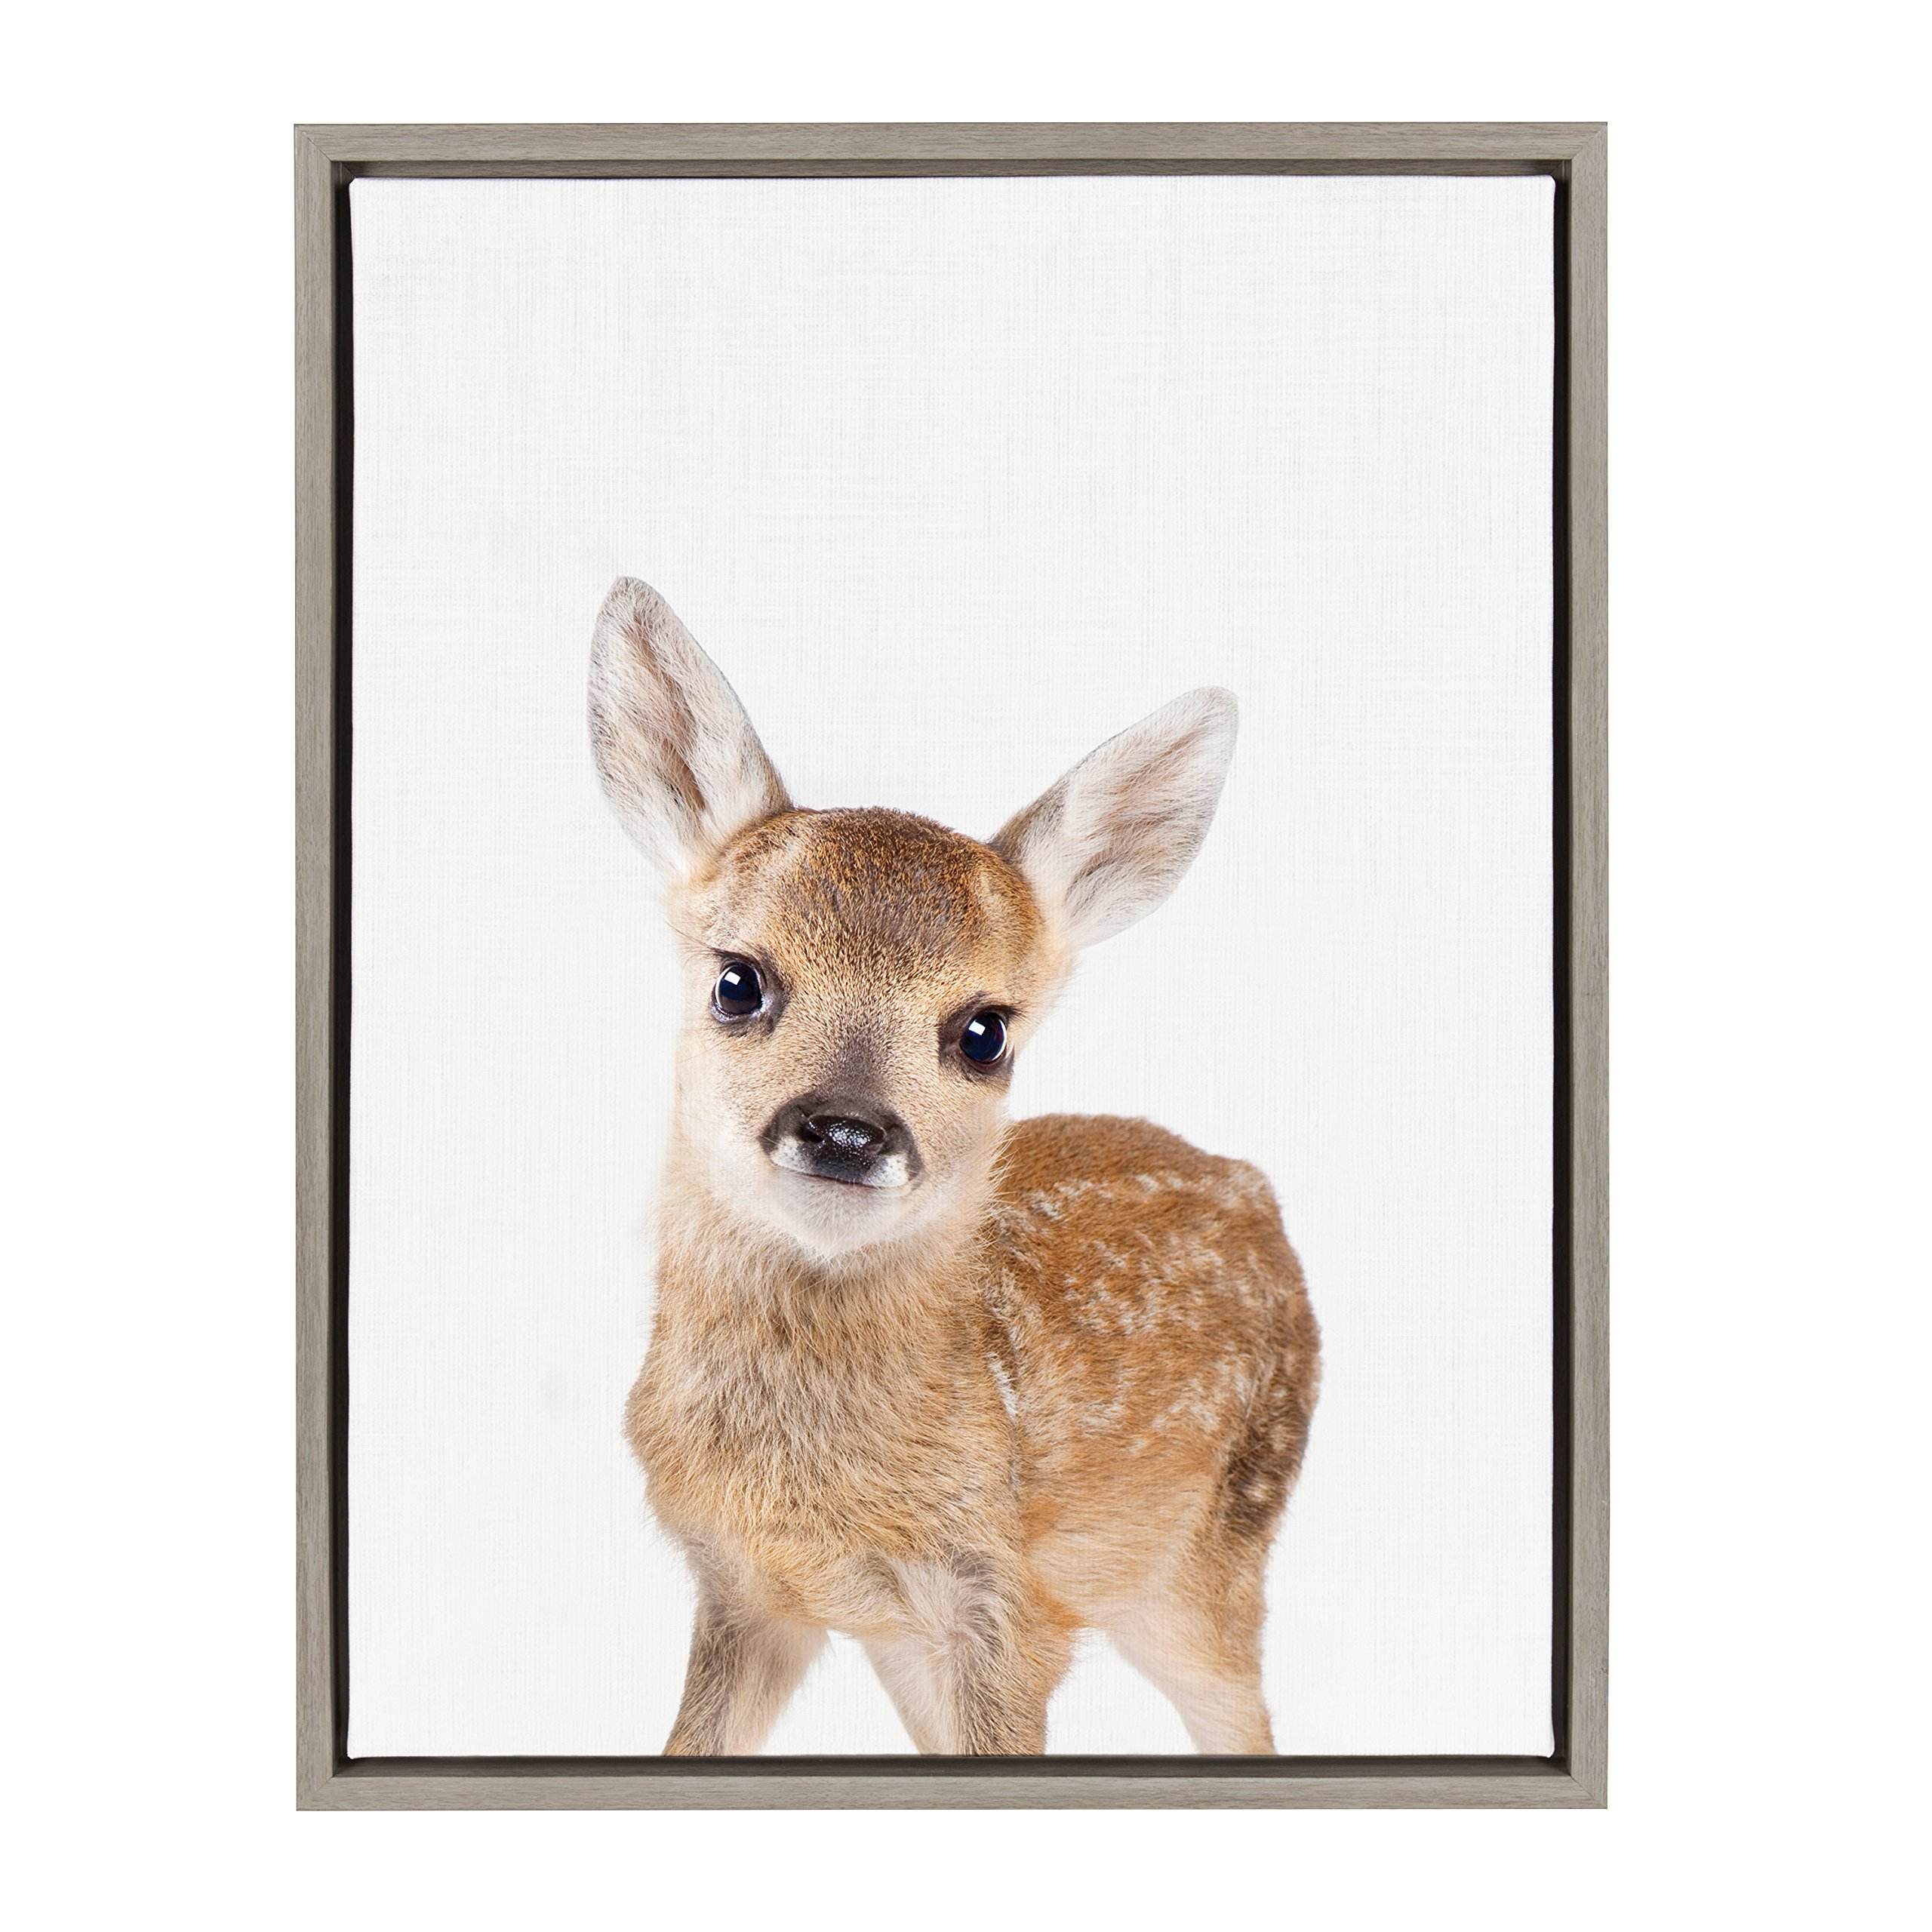 Kate and Laurel - Sylvie Baby Deer Animal Print Portrait Framed Canvas Wall Art by Amy Peterson, Gray 18 x 24